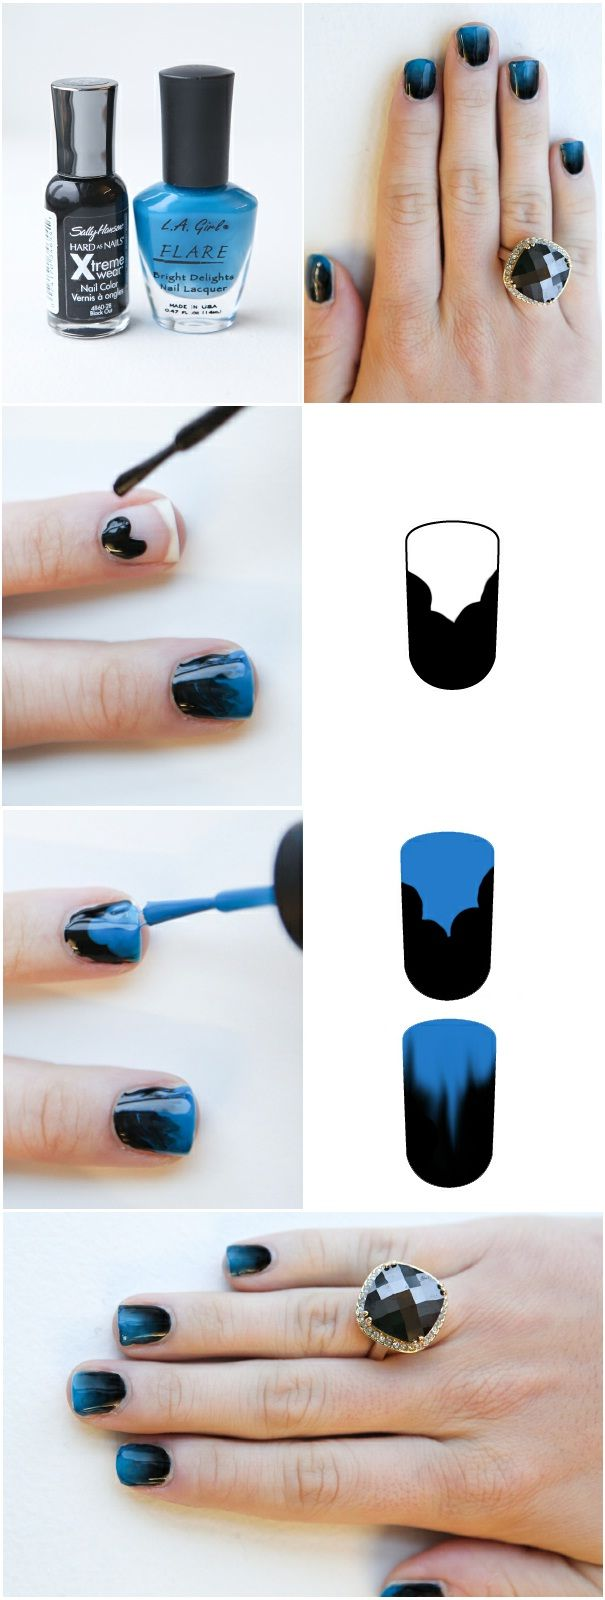 Easy Ombre Nails#Repin By:Pinterest++ for iPad#: Nails Art, Nailart, Nails Design, Black Nails, Gradient Nails, Nails Polish, Ombre Nails, Nails Tutorials, Blue Nails